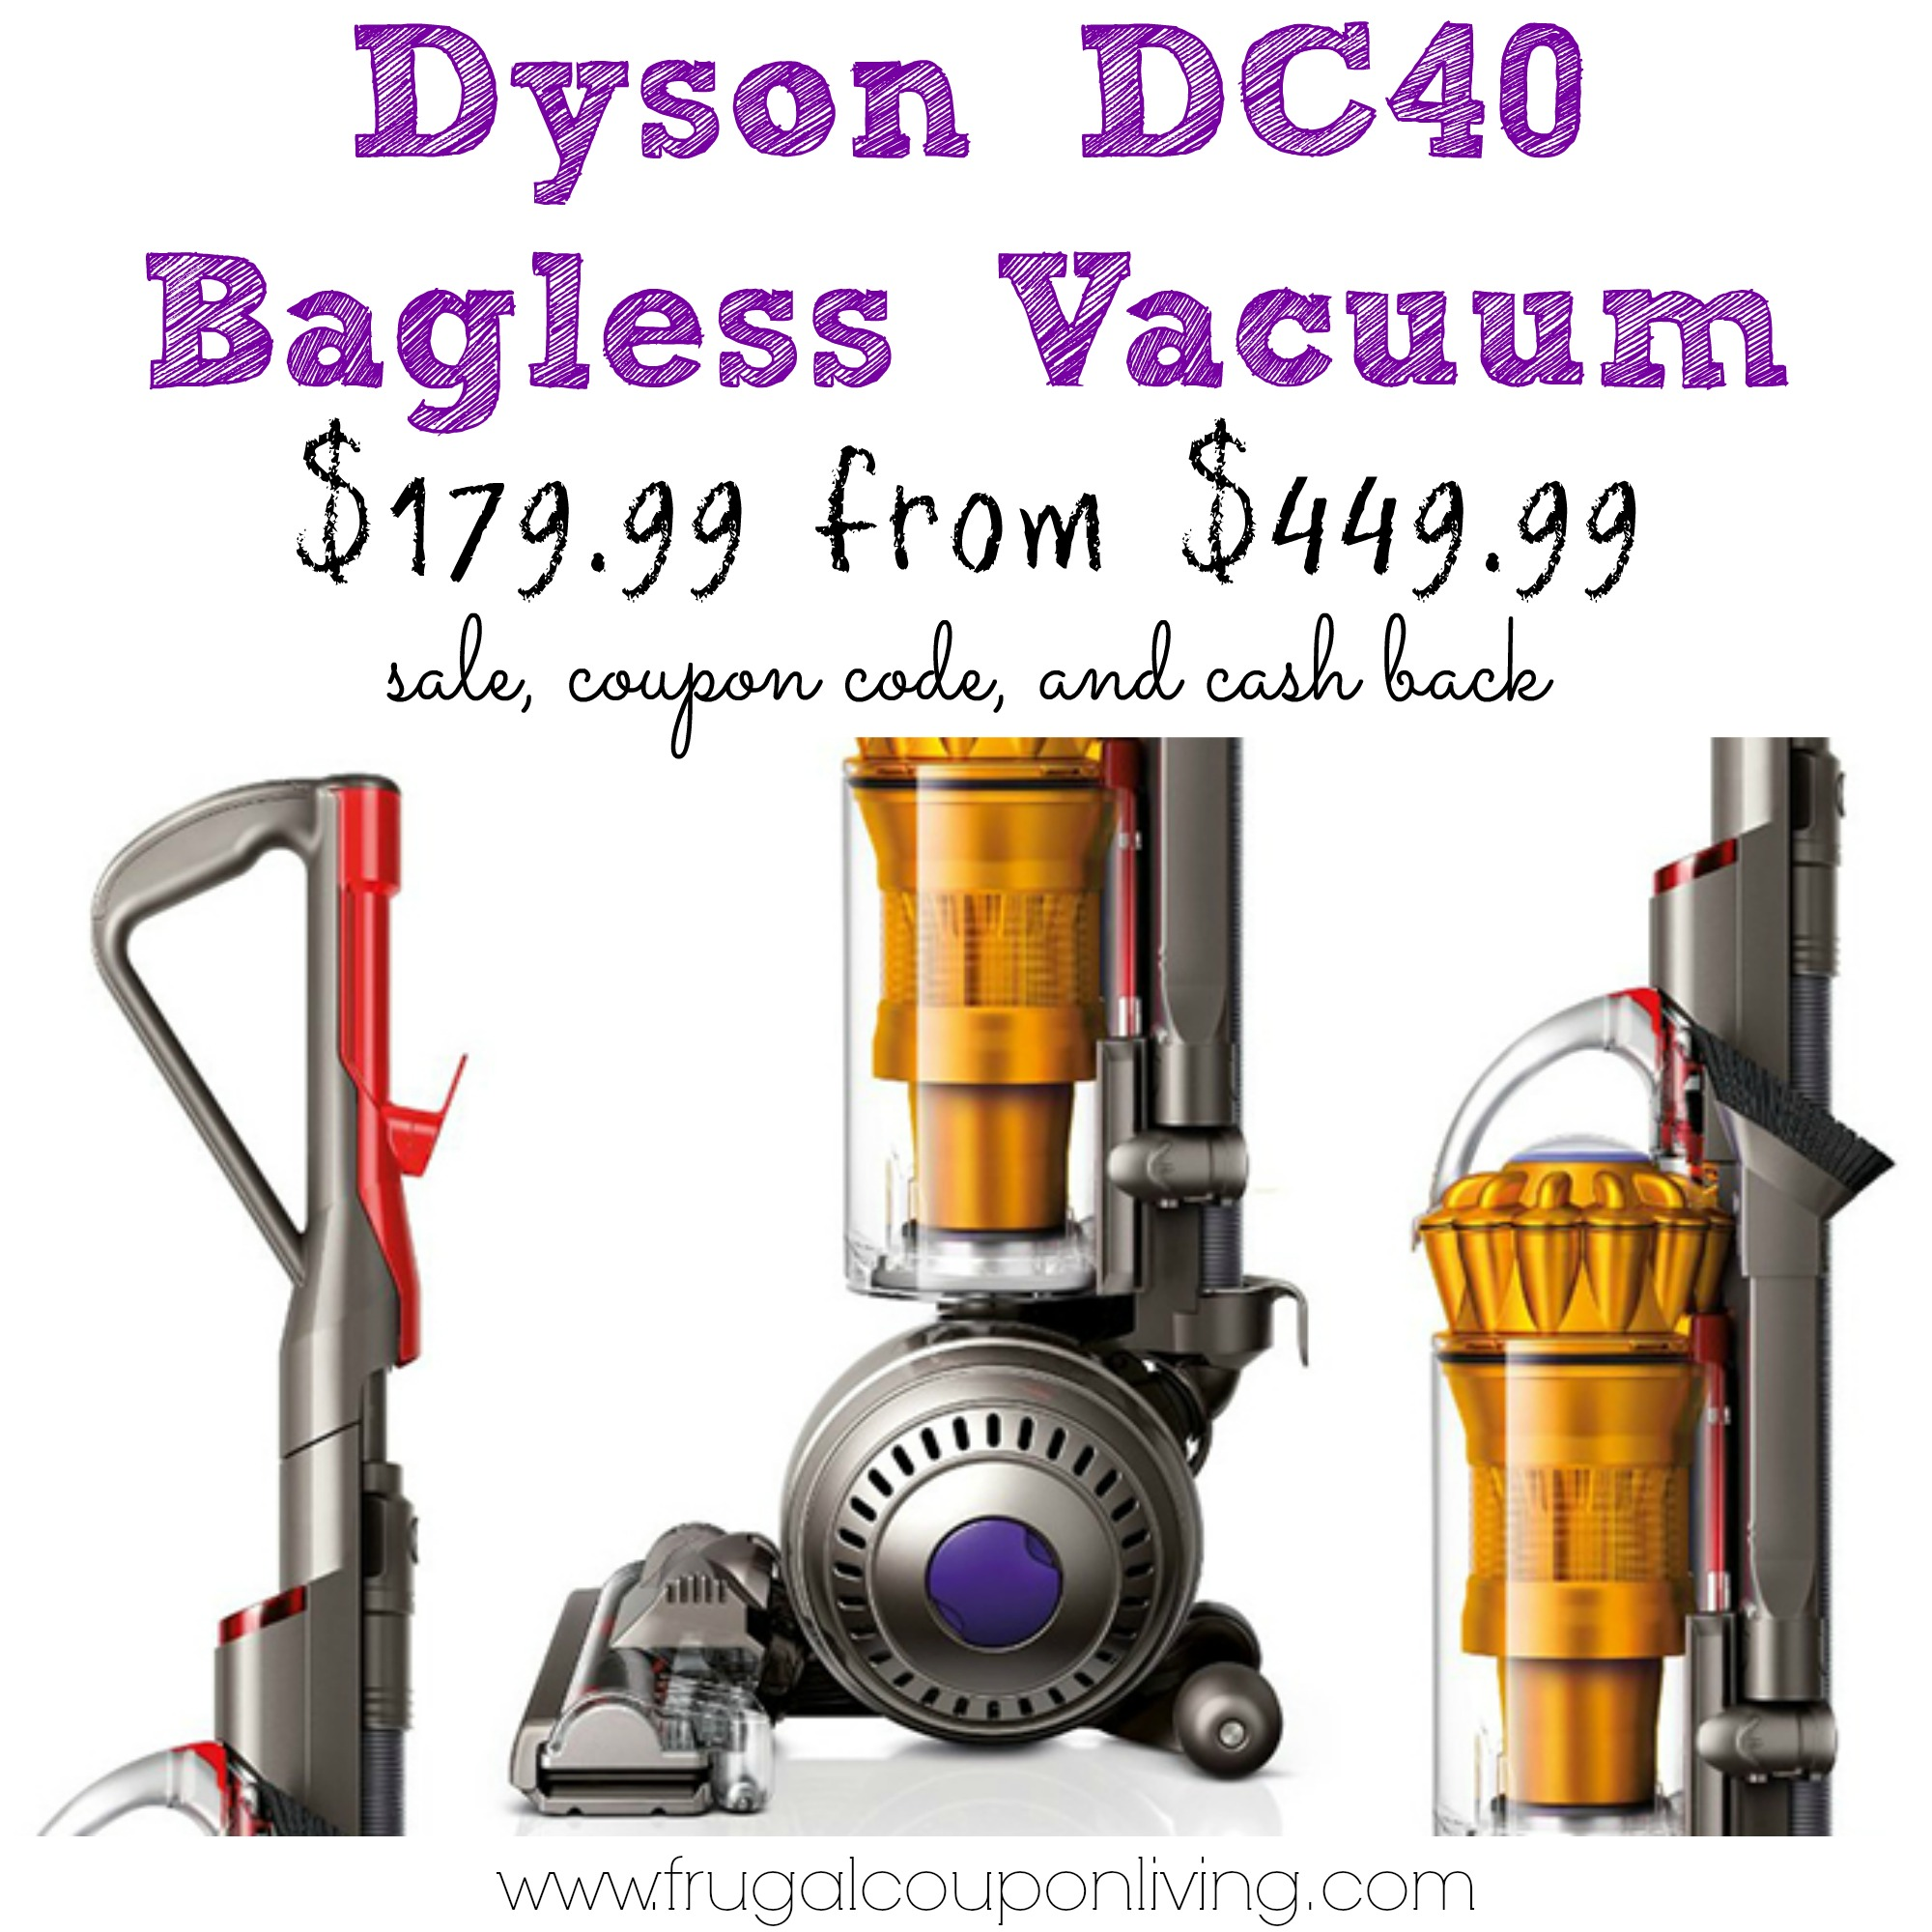 black friday dyson sale dc40 vacuum for 180 from 450. Black Bedroom Furniture Sets. Home Design Ideas